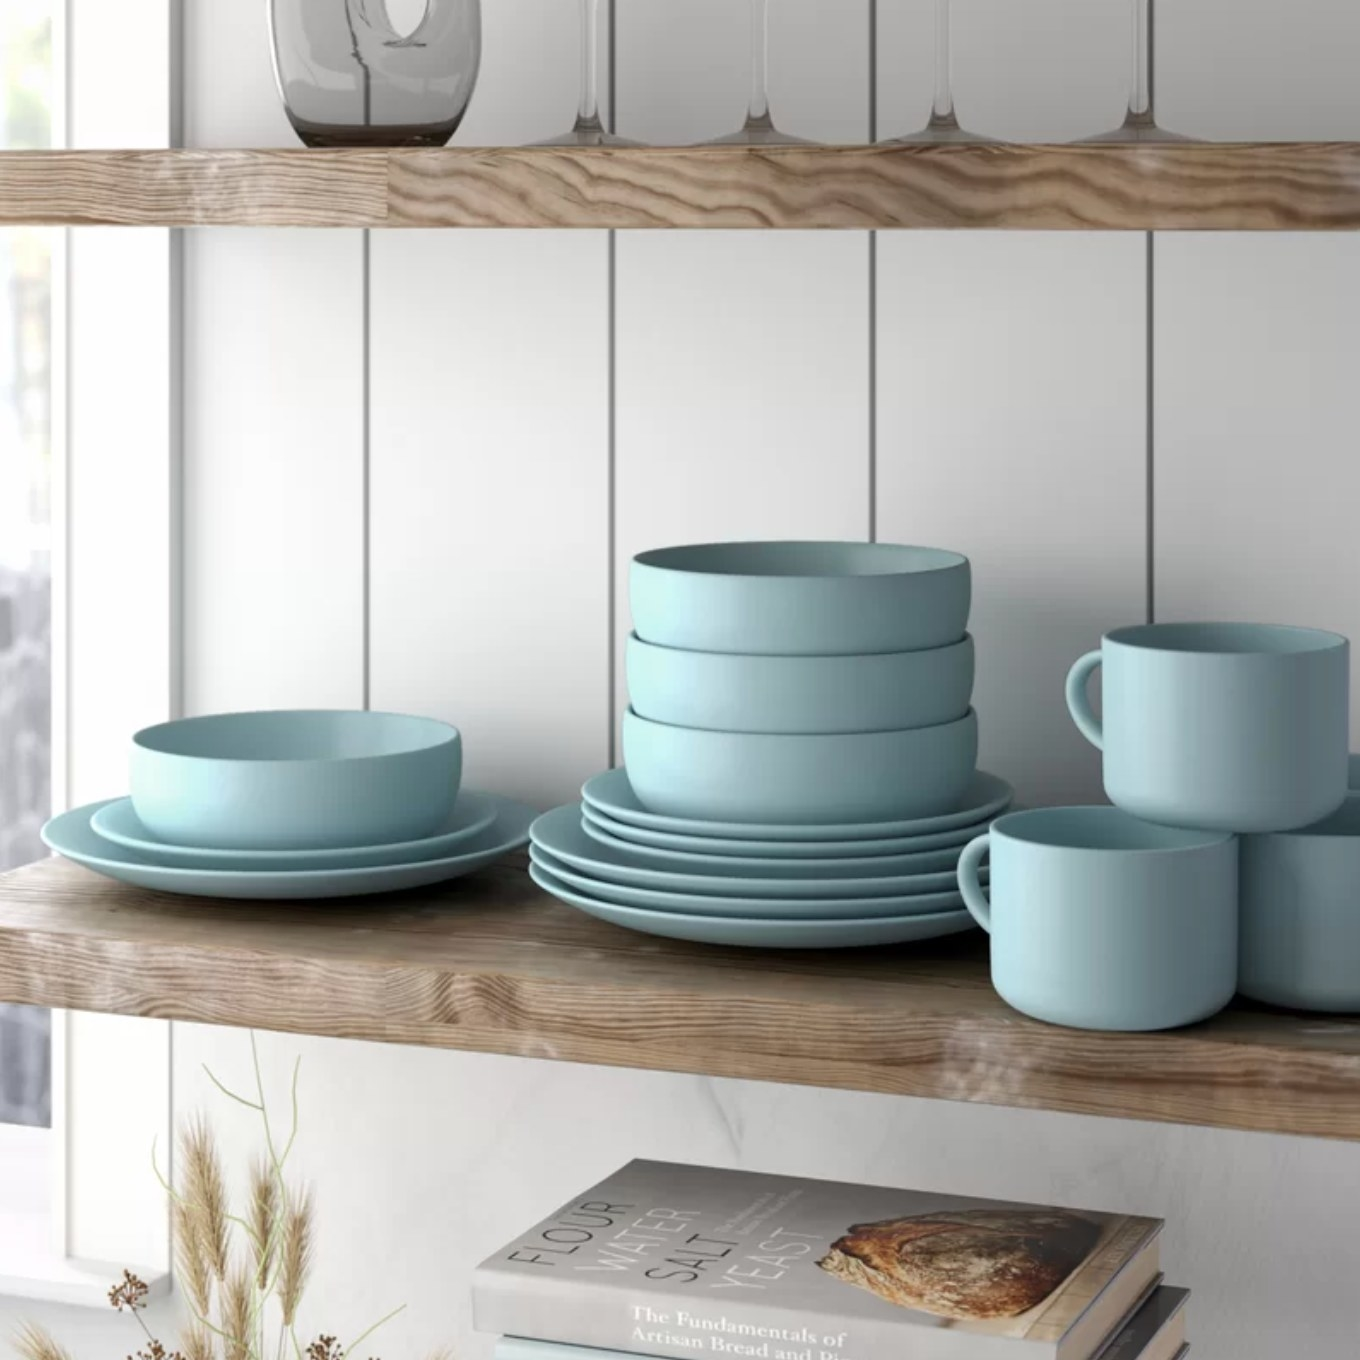 The dinnerware set on a wood shelf in a kitchen